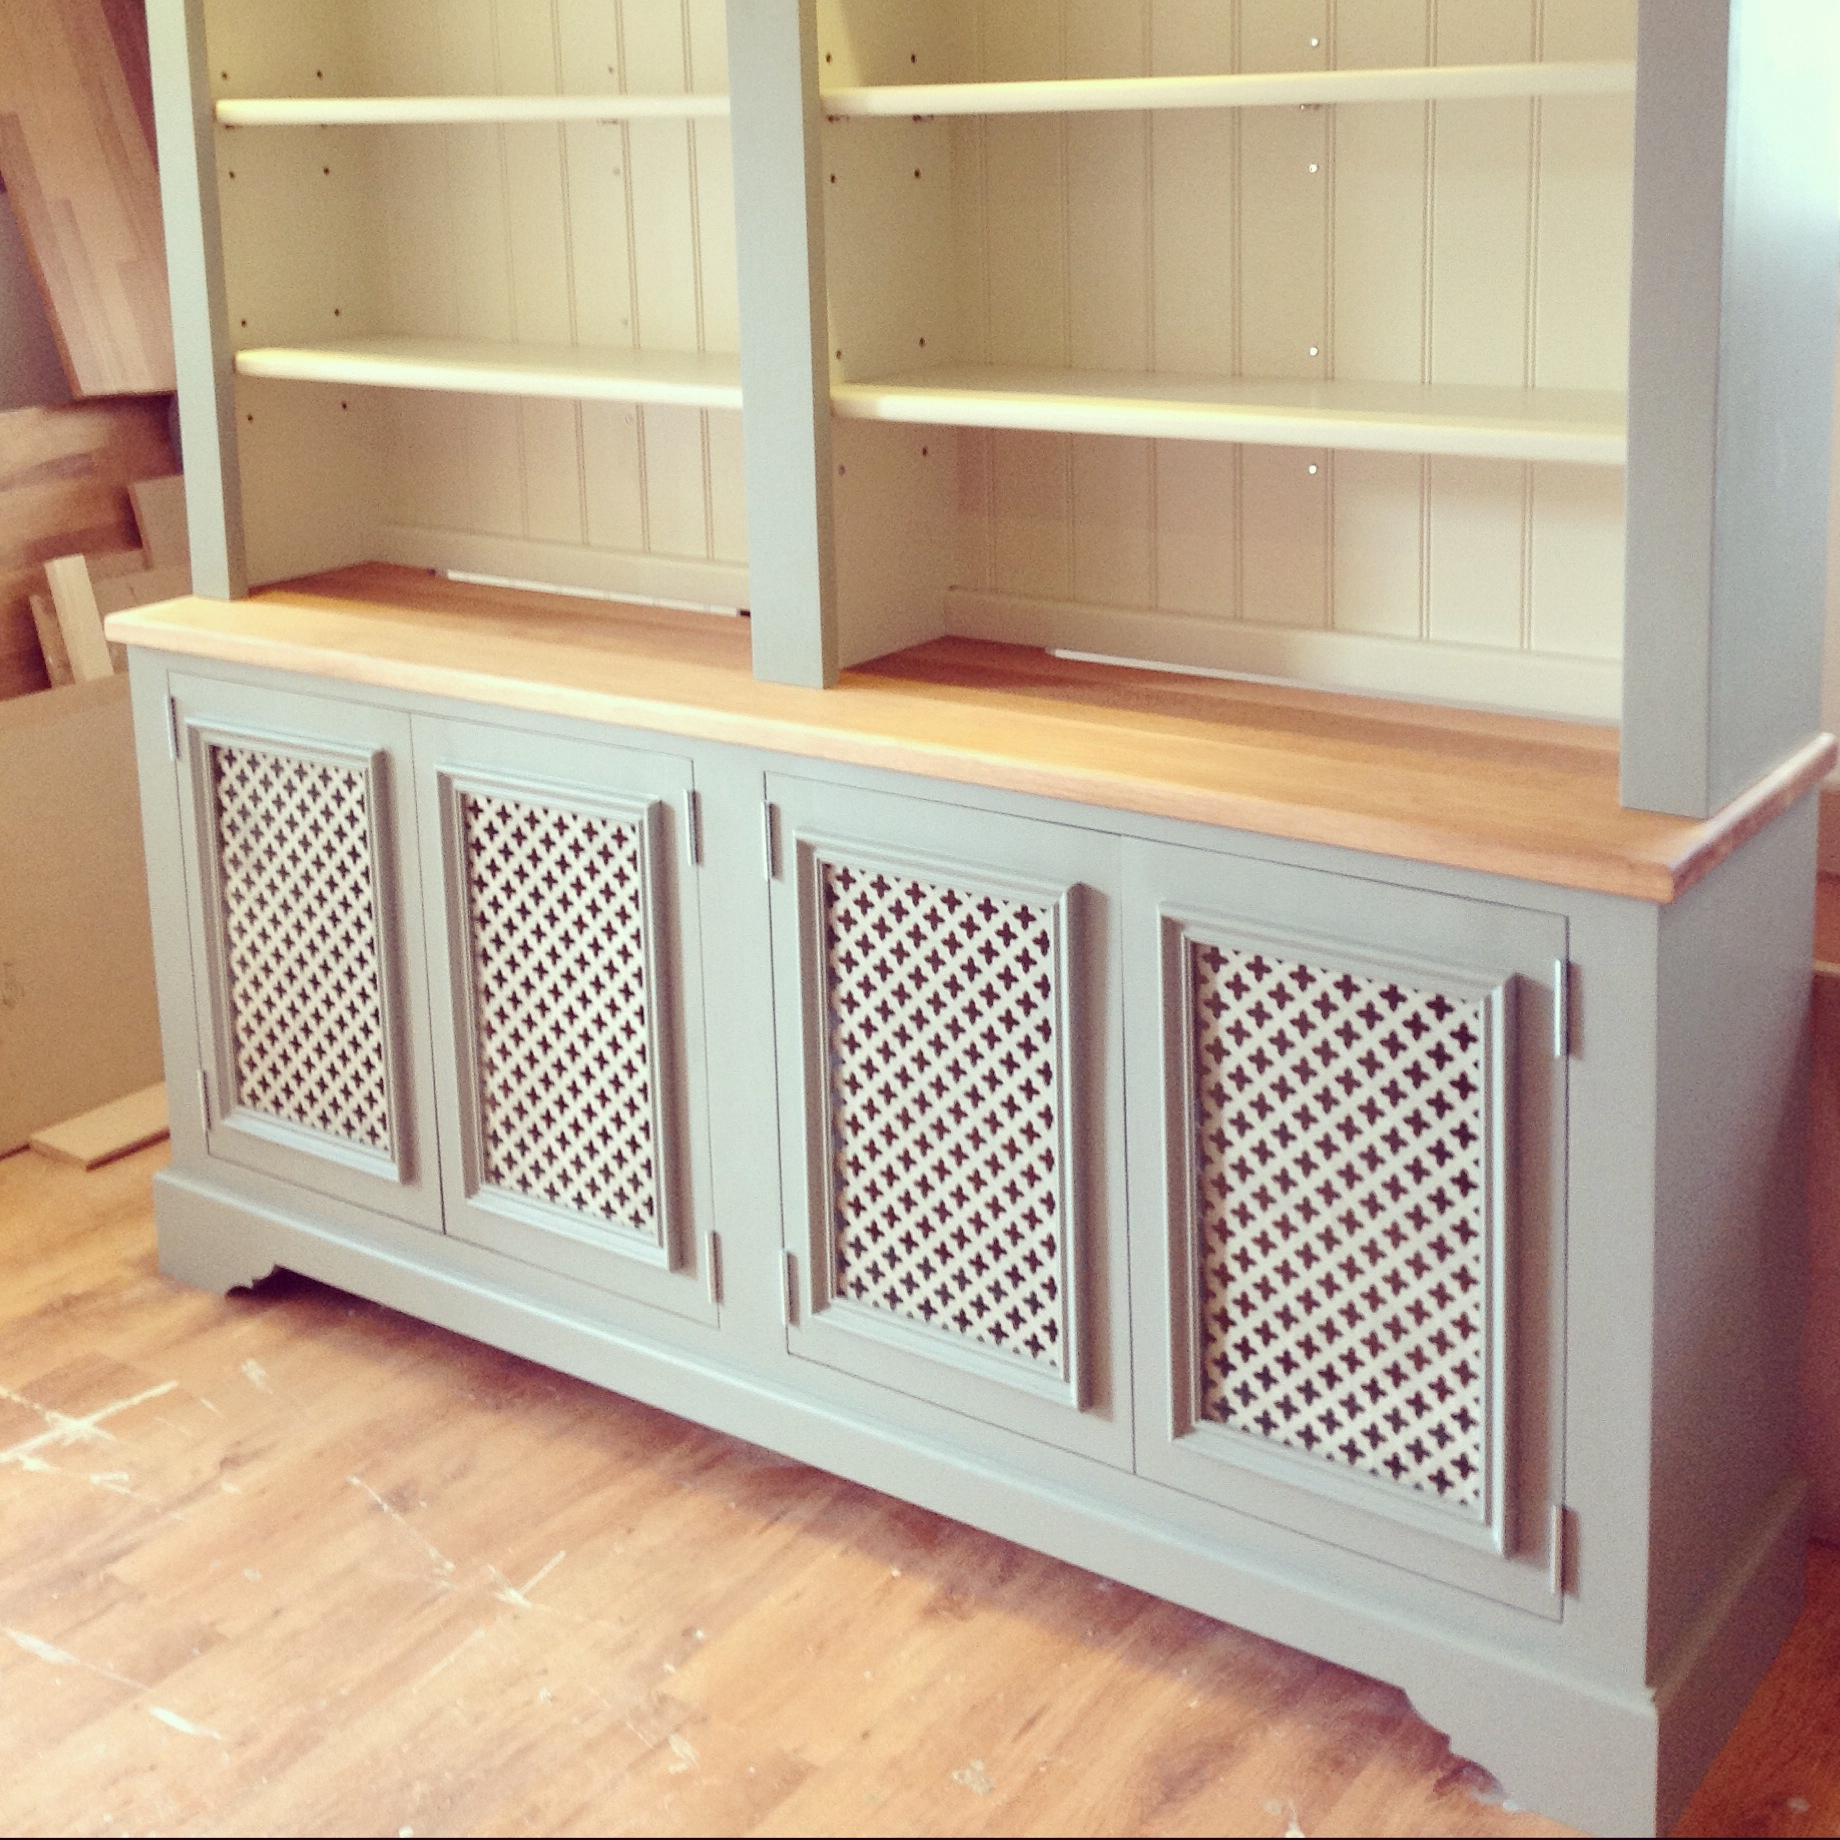 Radiator Covers With Bookshelves For 2017 Radiator Cover / Dresser, Painted In Farrow & Ball {lime White (View 9 of 15)